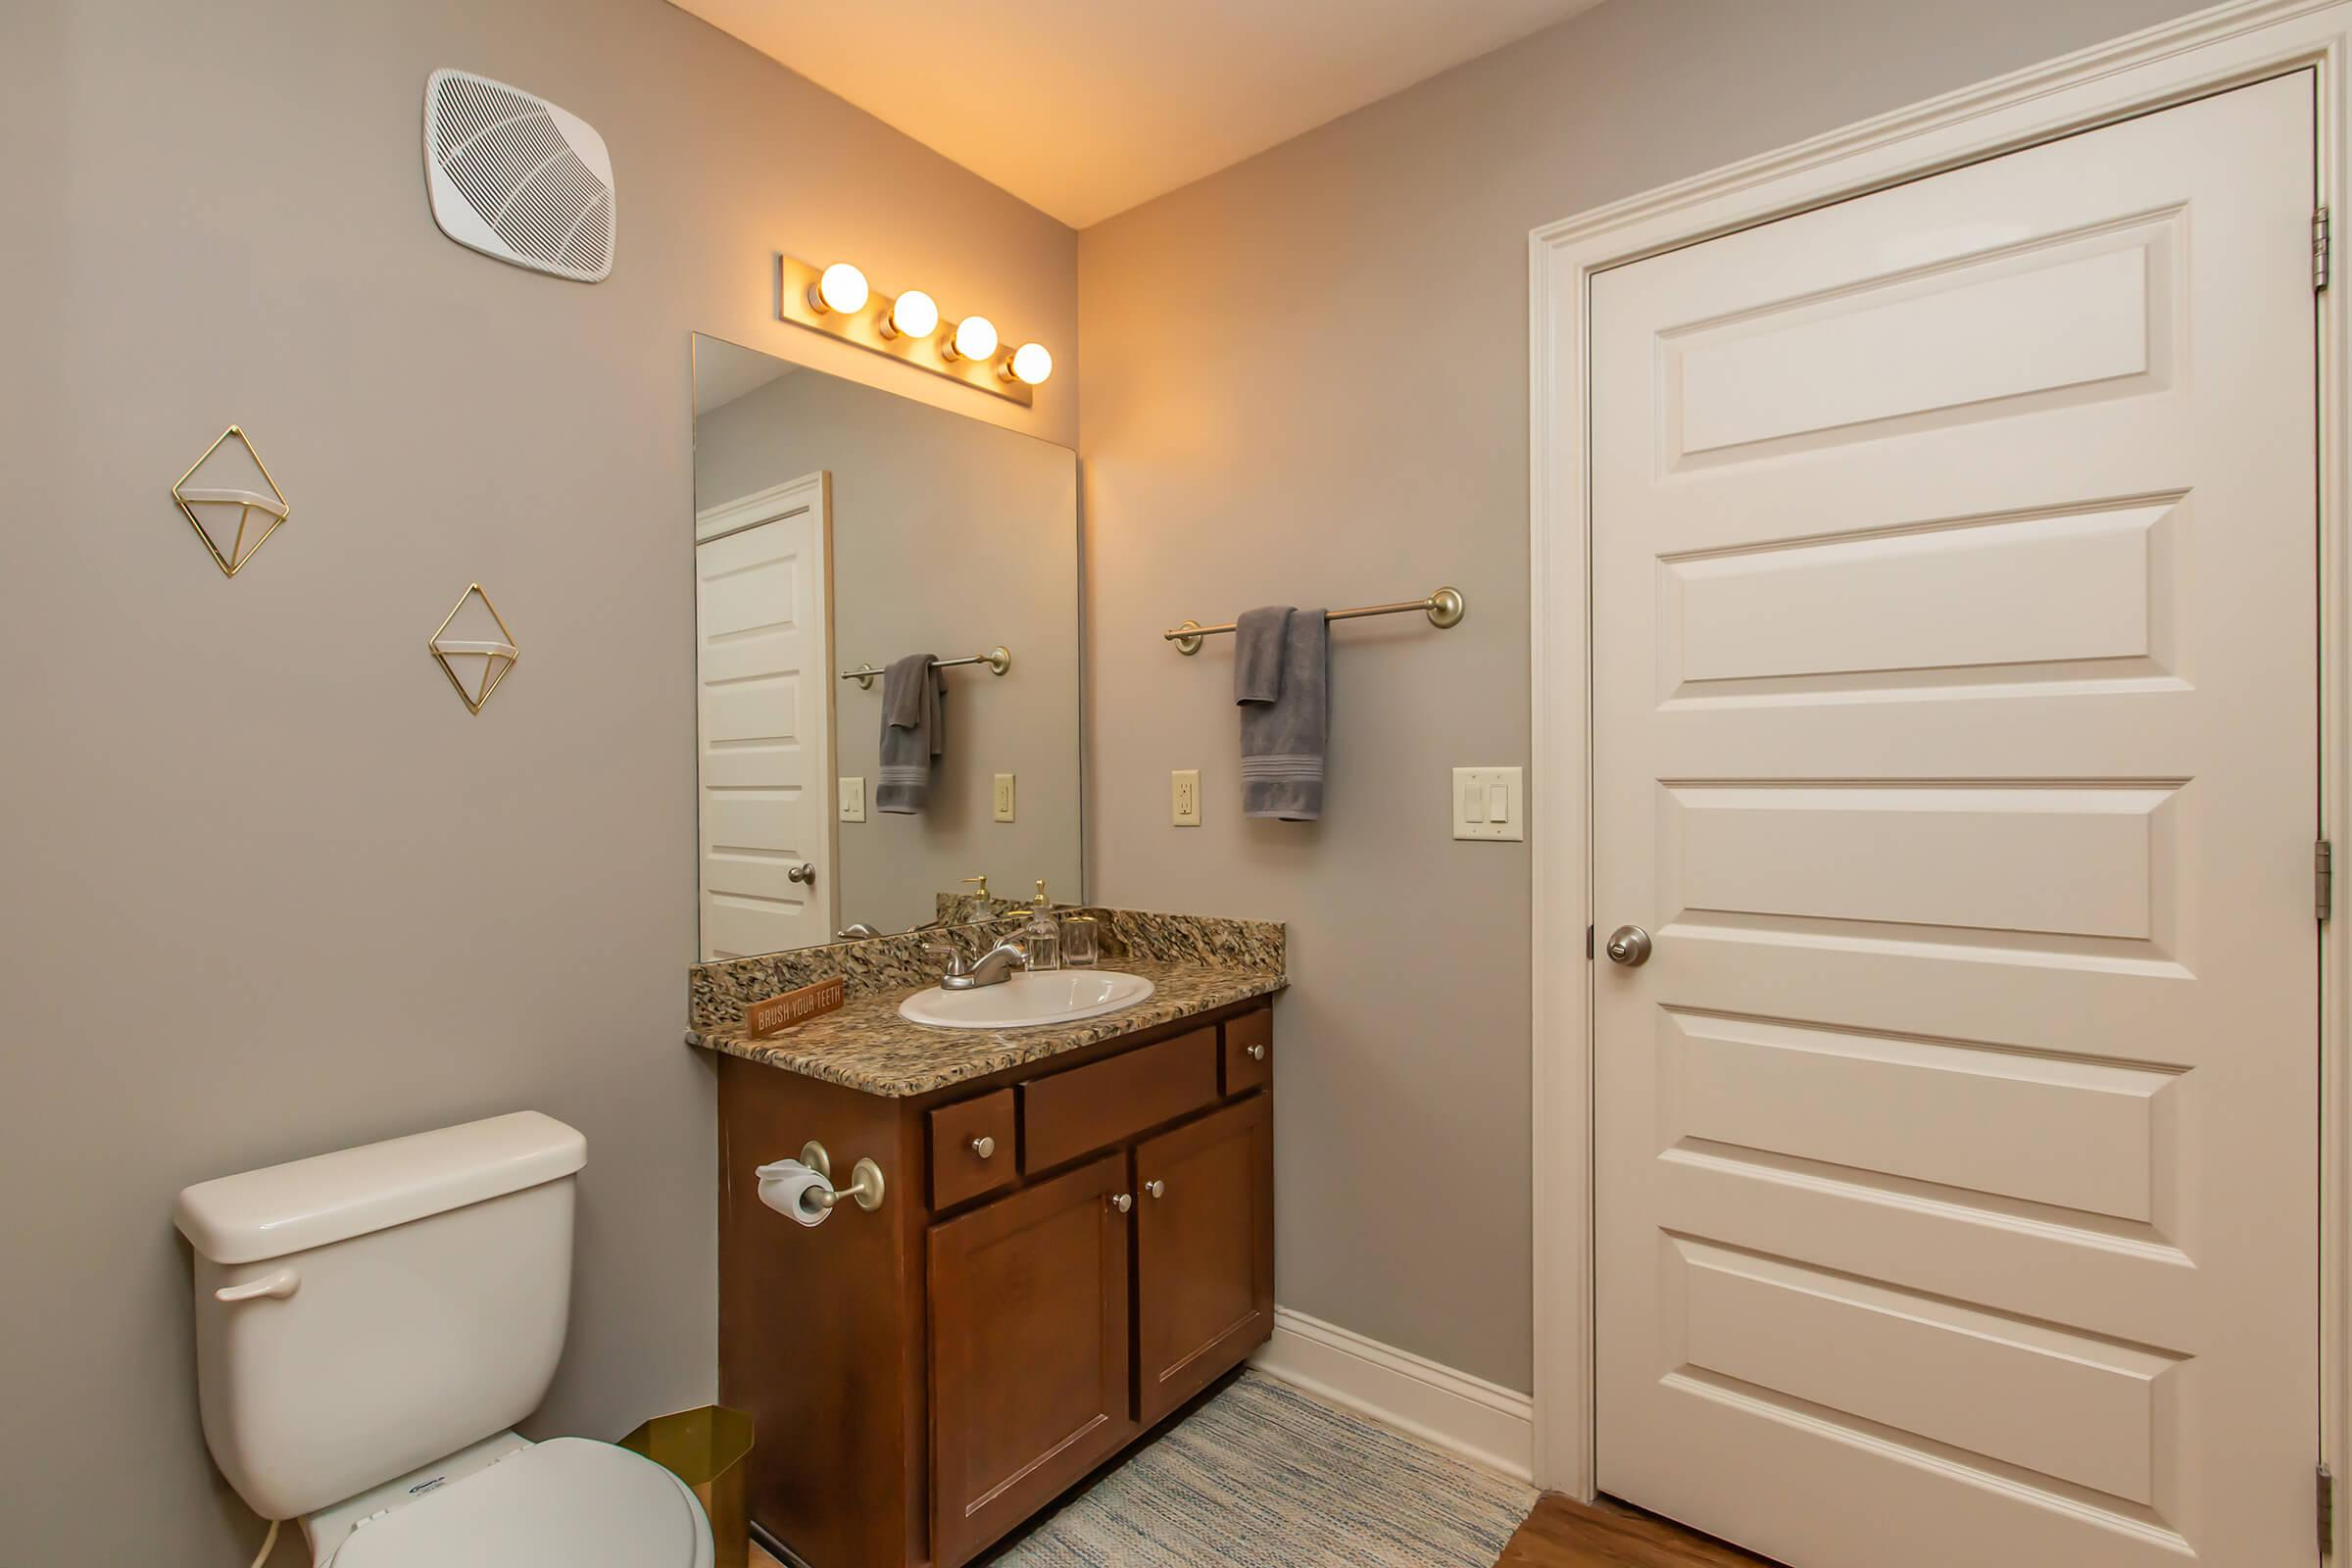 a bedroom area with a sink and a mirror